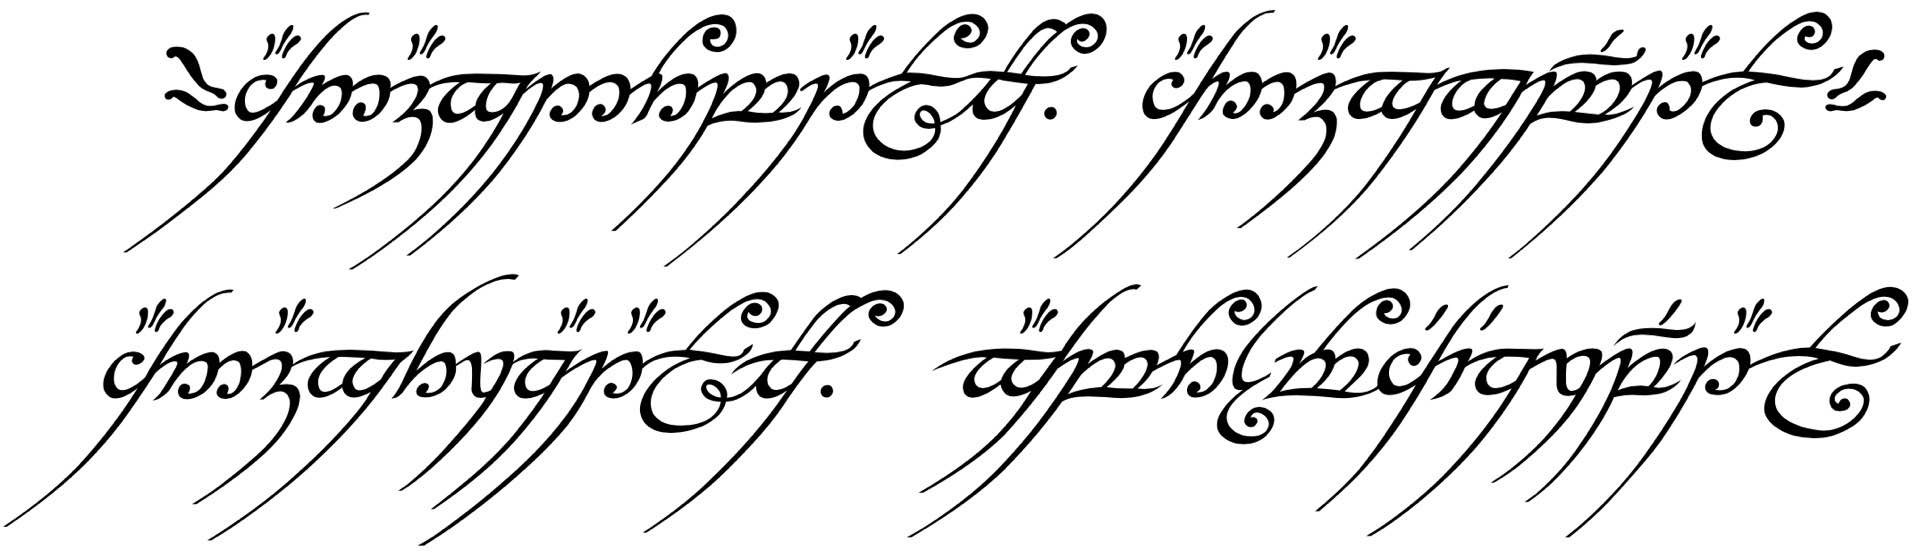 lord-of-the-rings-fire-ring-to-rule-them-all-inscription